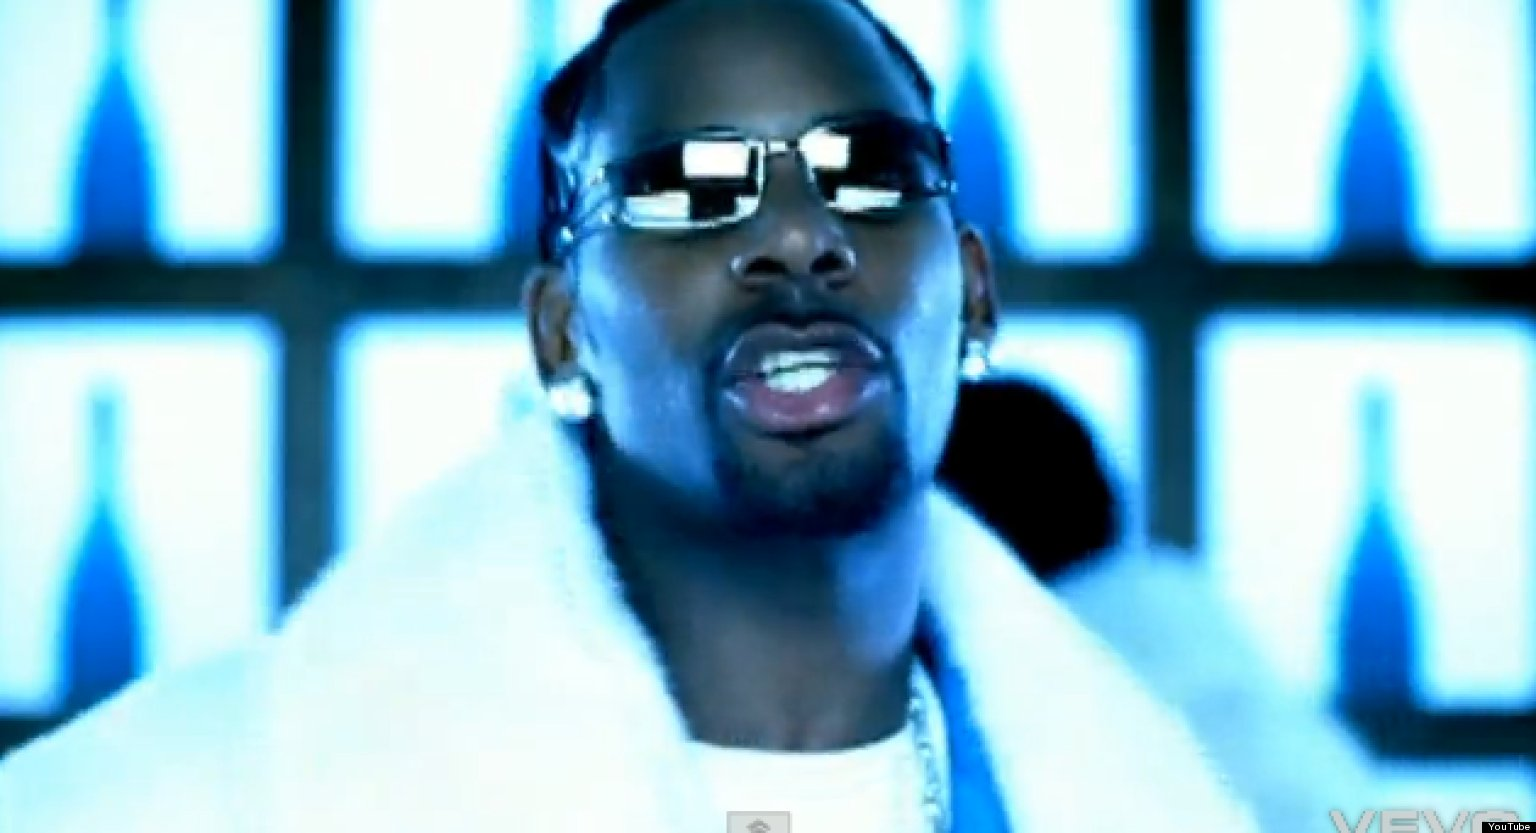 R. Kelly's 'Ignition (Remix)' Turns 10: Do You Feel Old ...